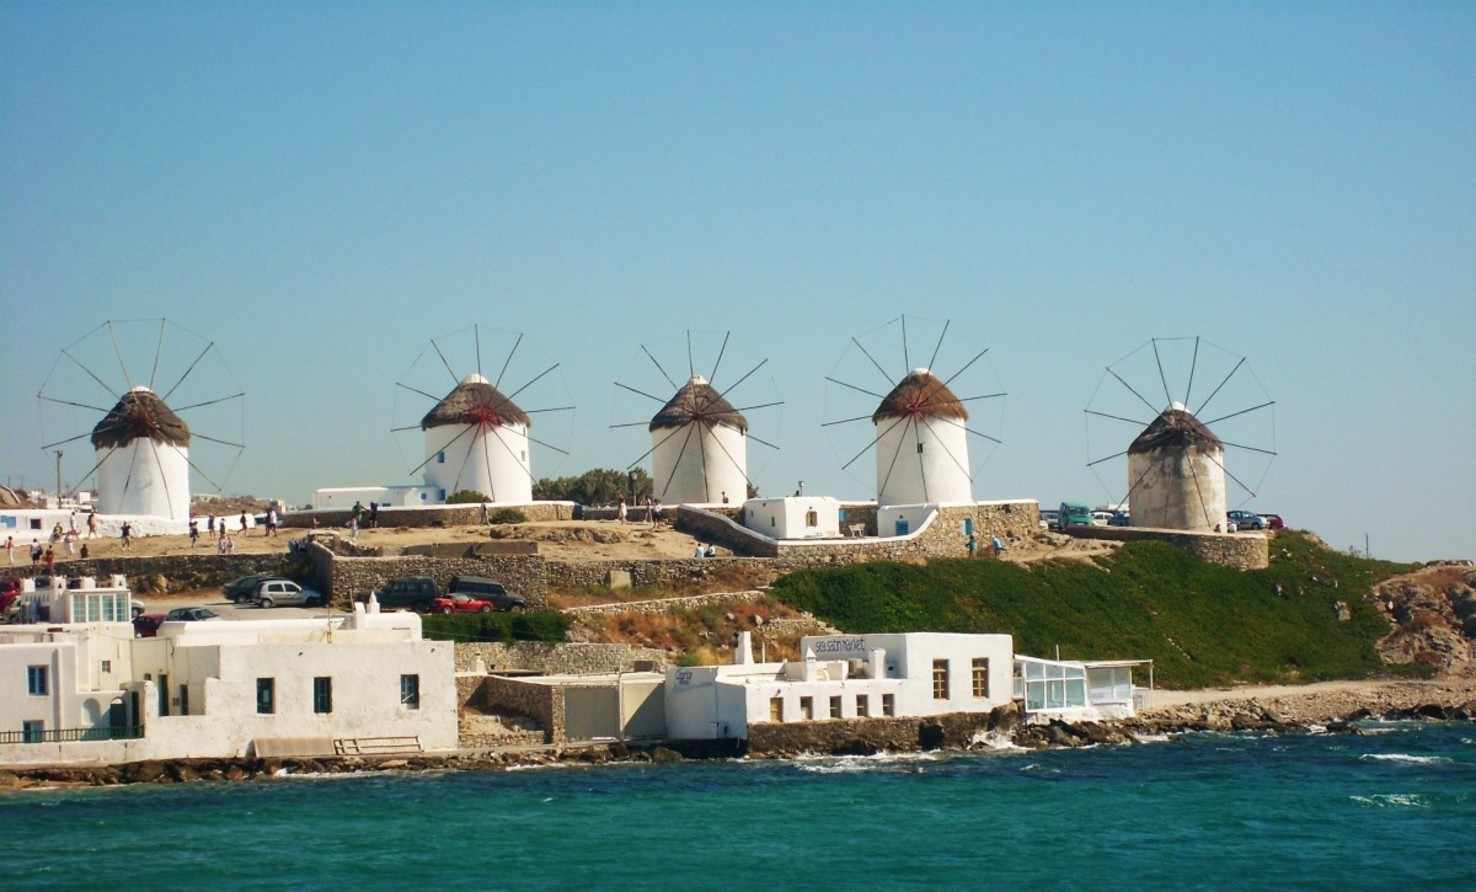 Large mill sea cyclades mykonos mediterranean holiday greece travel